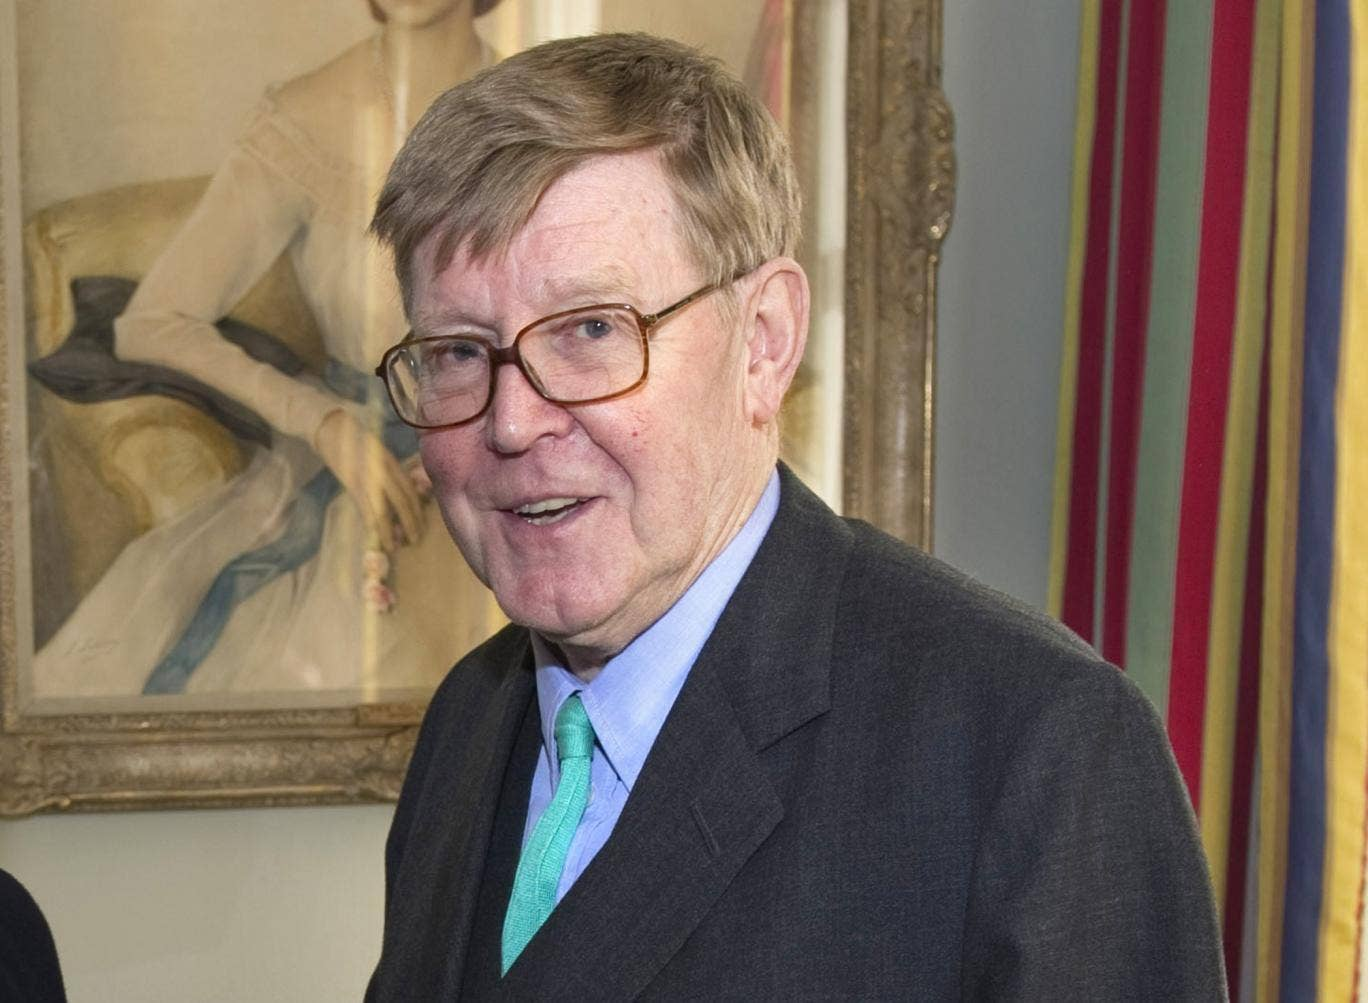 Alan Bennett would make a great guest editor for the Today programme